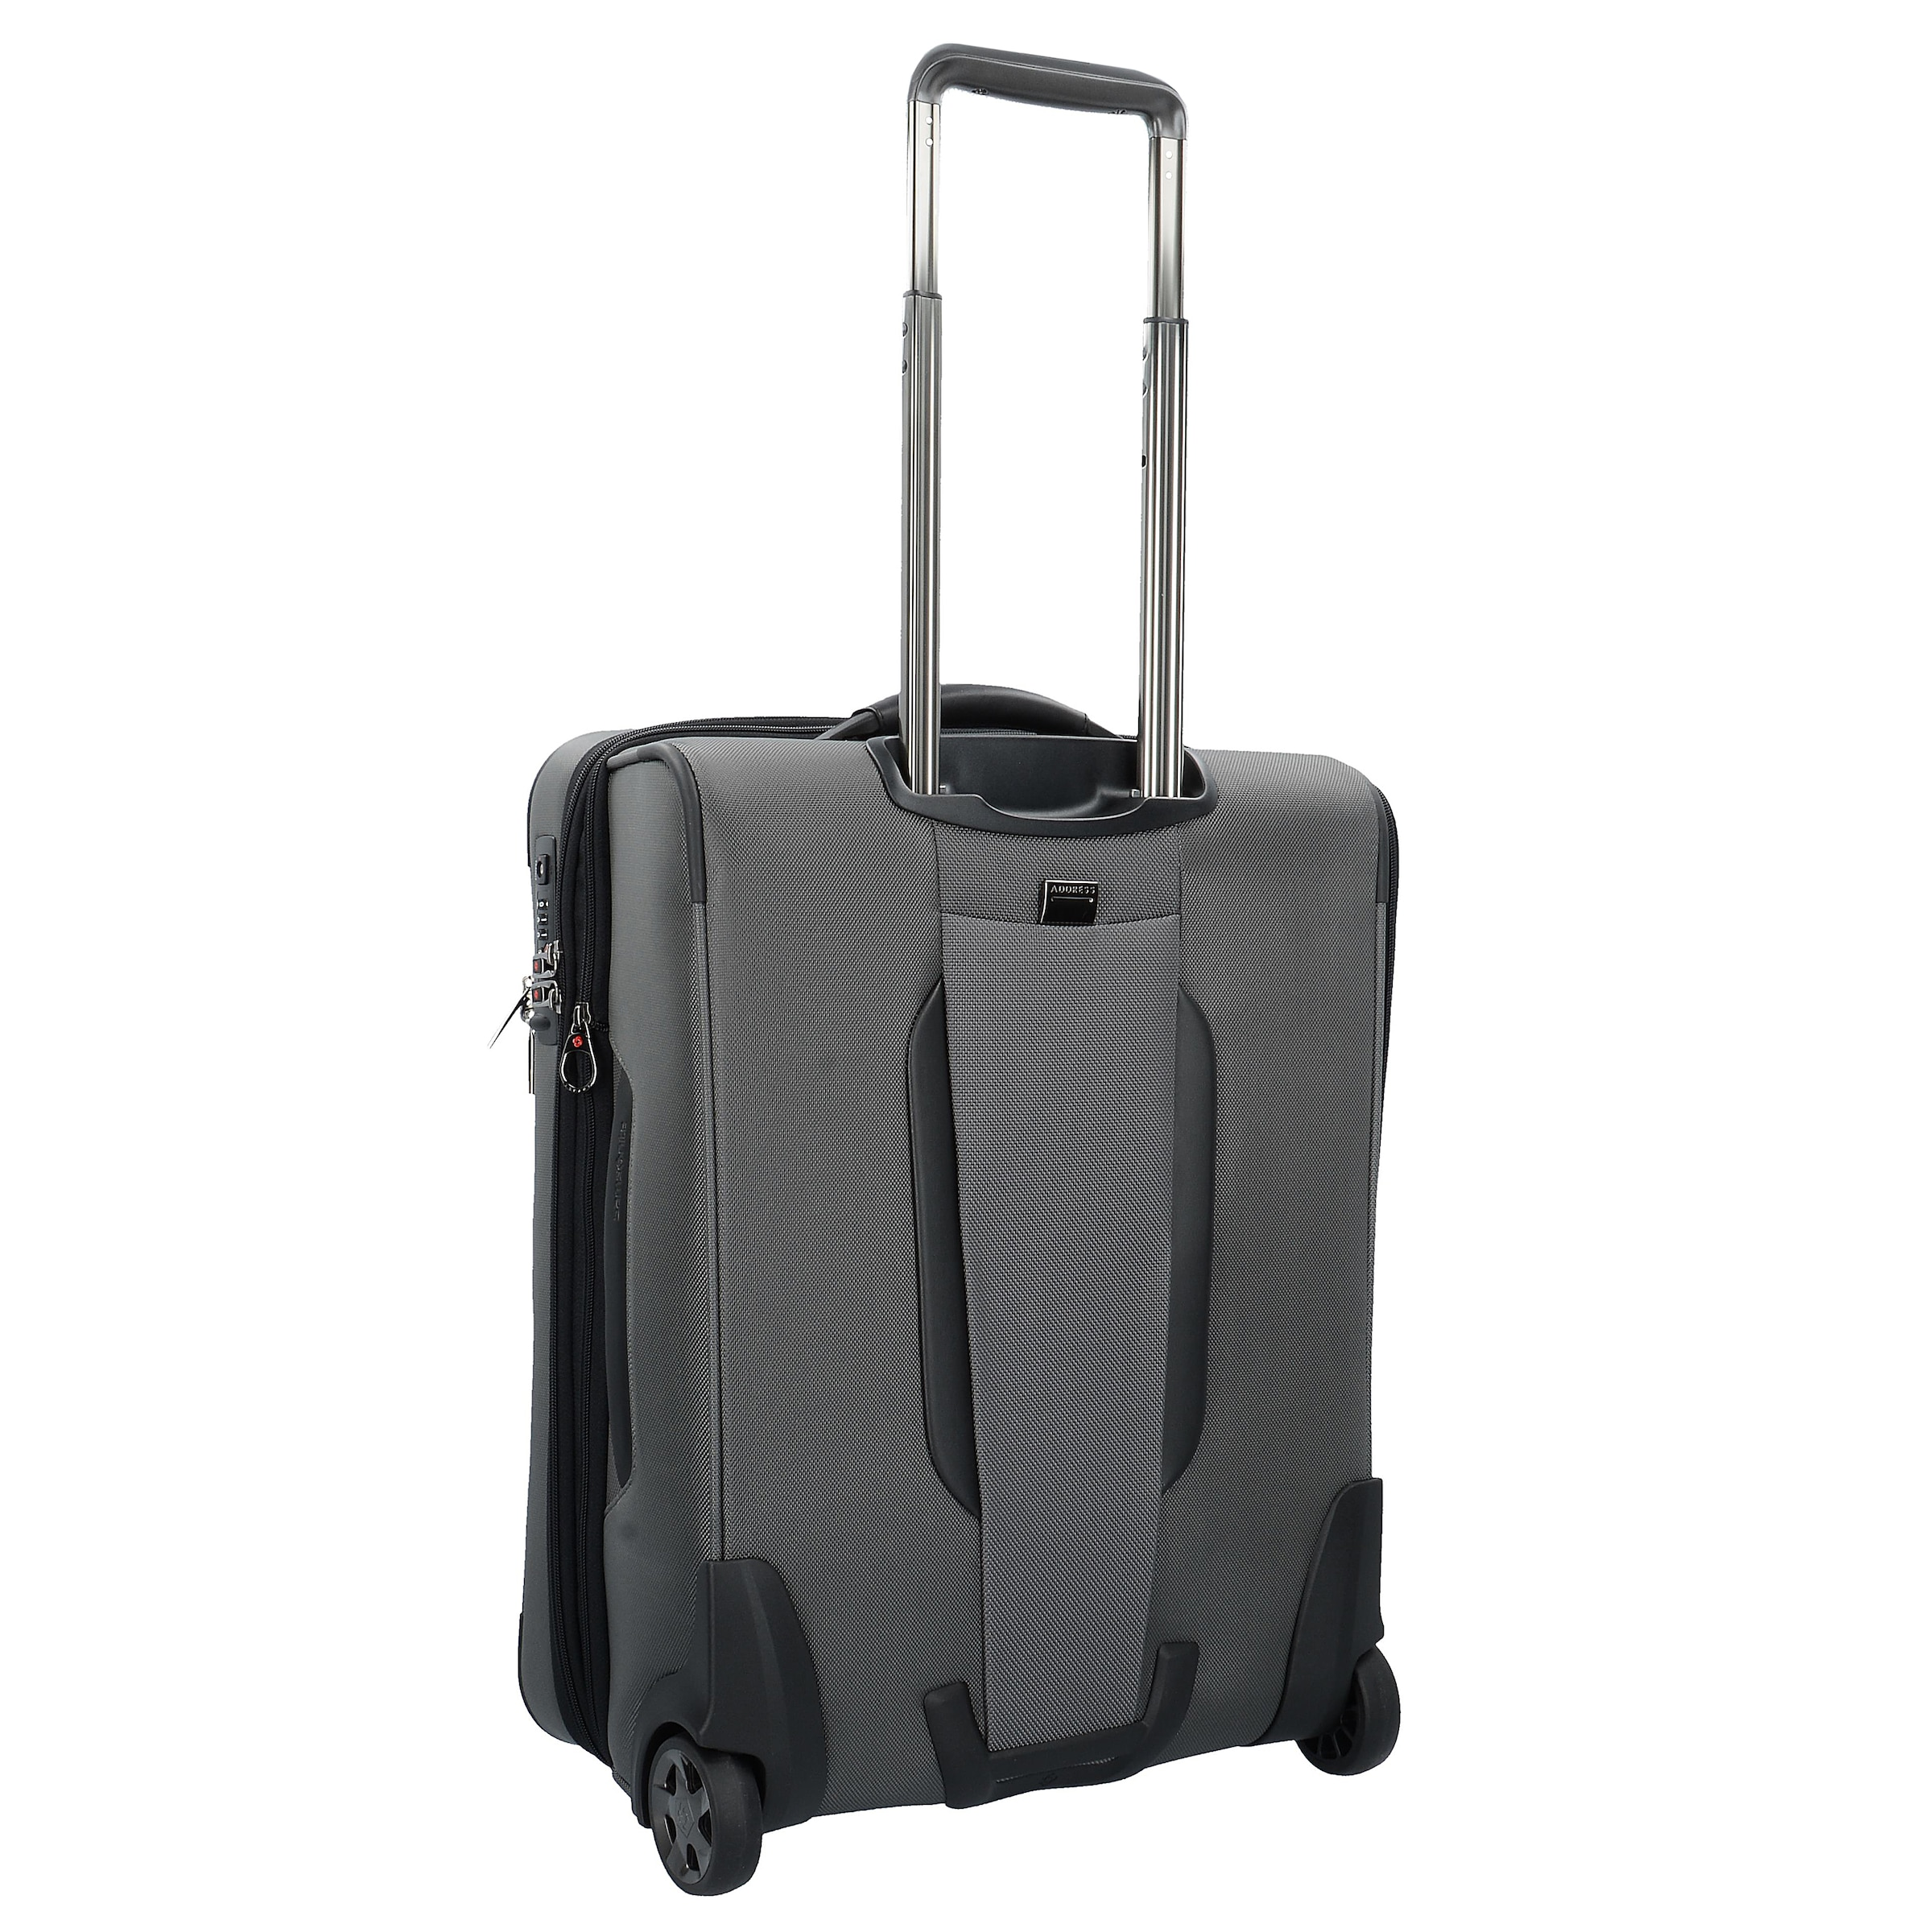 Trolley BasaltgrauSchwarz Samsonite Samsonite In Trolley BasaltgrauSchwarz In Trolley Samsonite N0vmOPyw8n